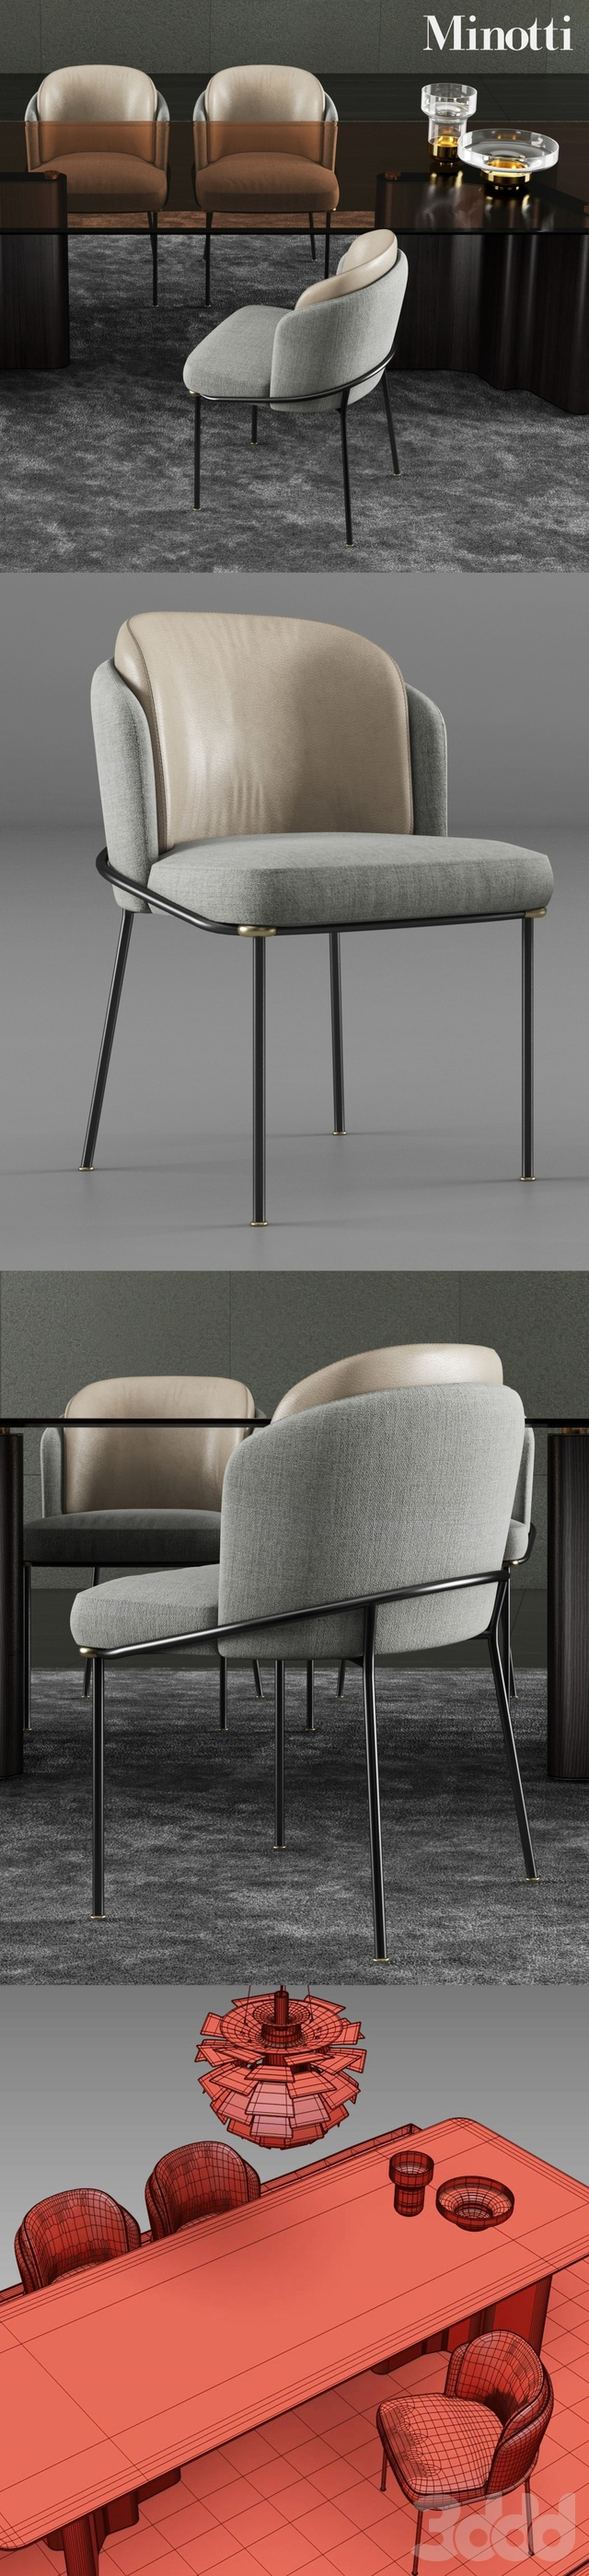 Minotti Lou Dining Table and Fil Noir Dining Chair